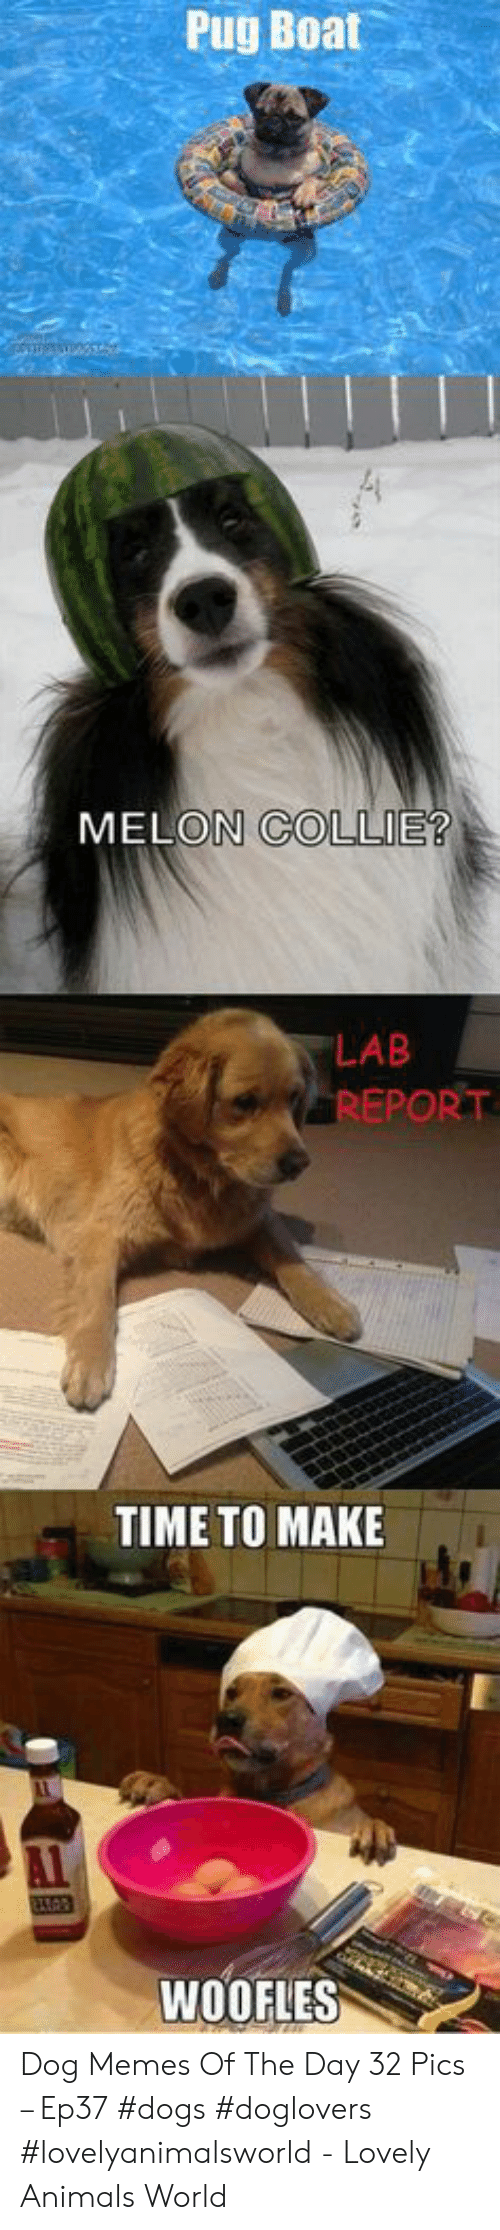 pug: Pug Boat  MELON COLLIE?  LAB  REPORT  TIME TO MAKE  WOOFLES Dog Memes Of The Day 32 Pics – Ep37 #dogs #doglovers #lovelyanimalsworld - Lovely Animals World